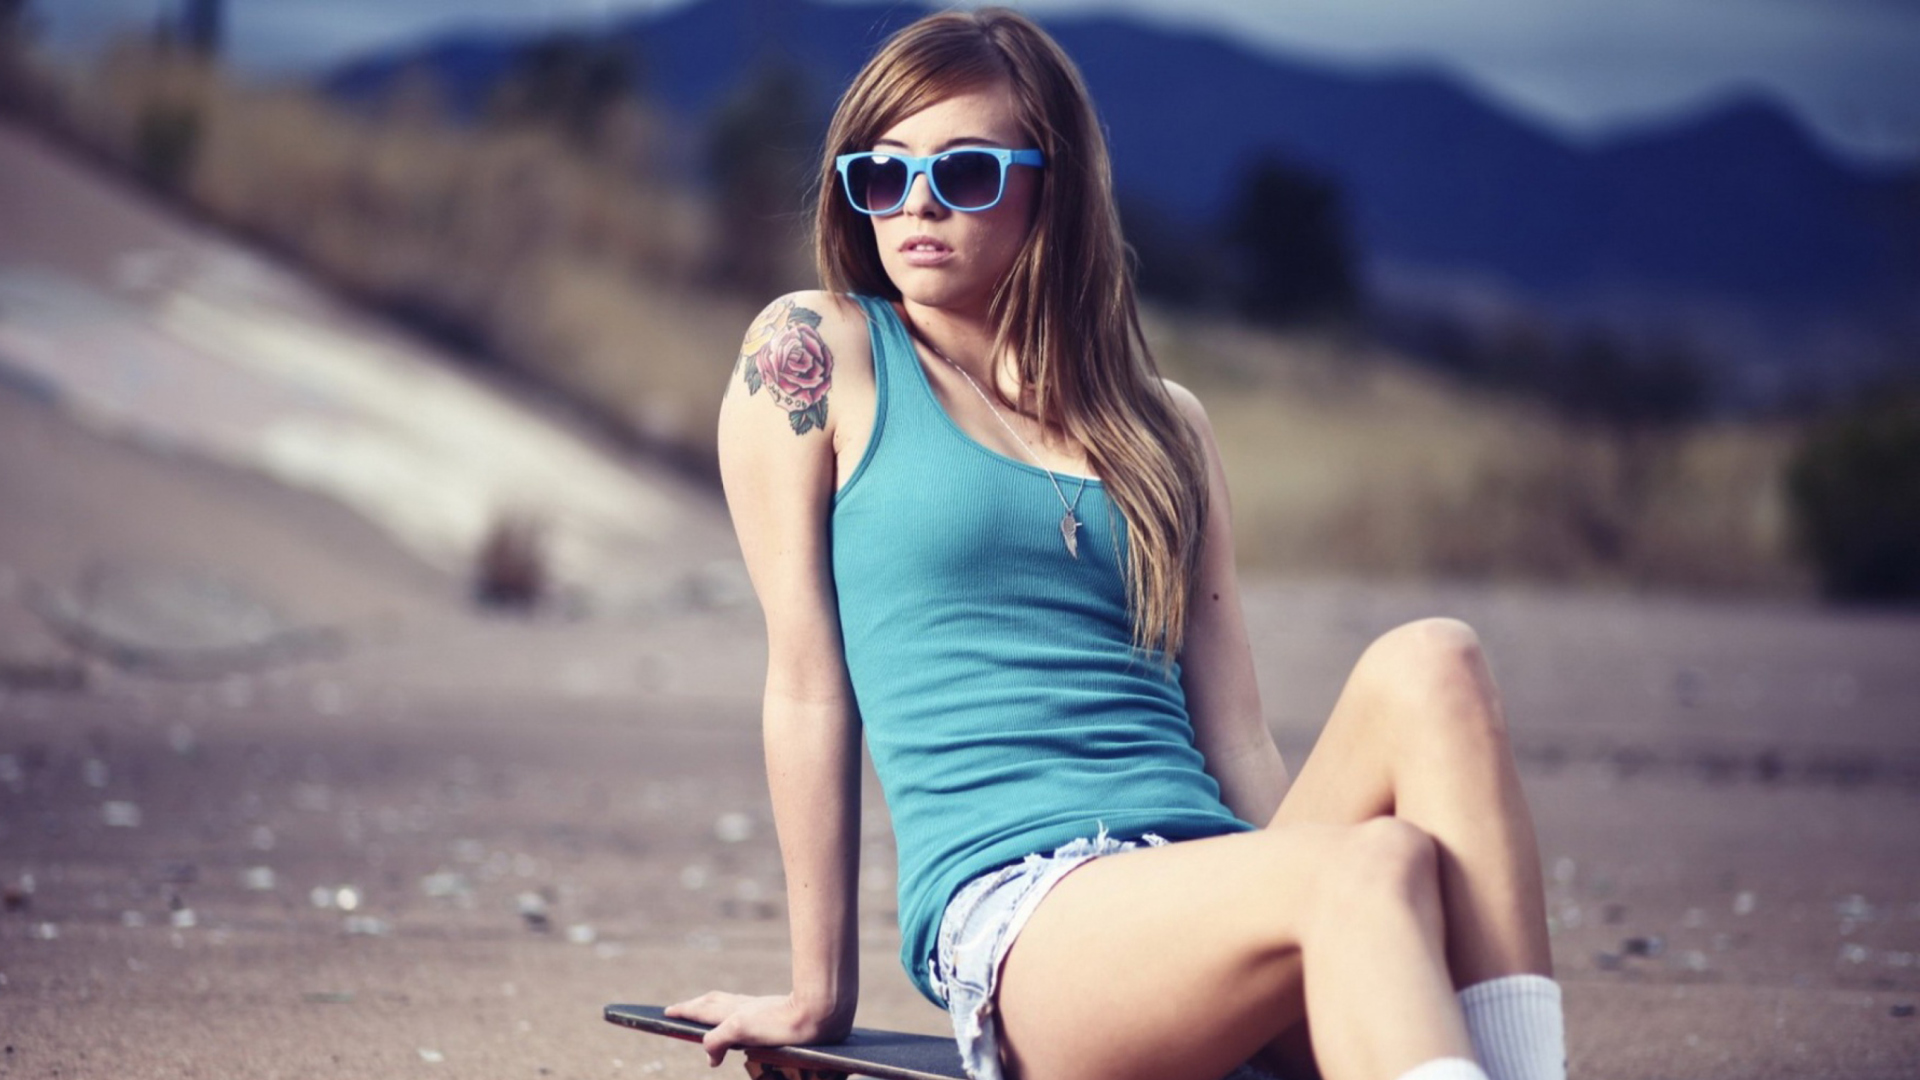 Sfondi Skater Girl With Tattoo 1920x1080